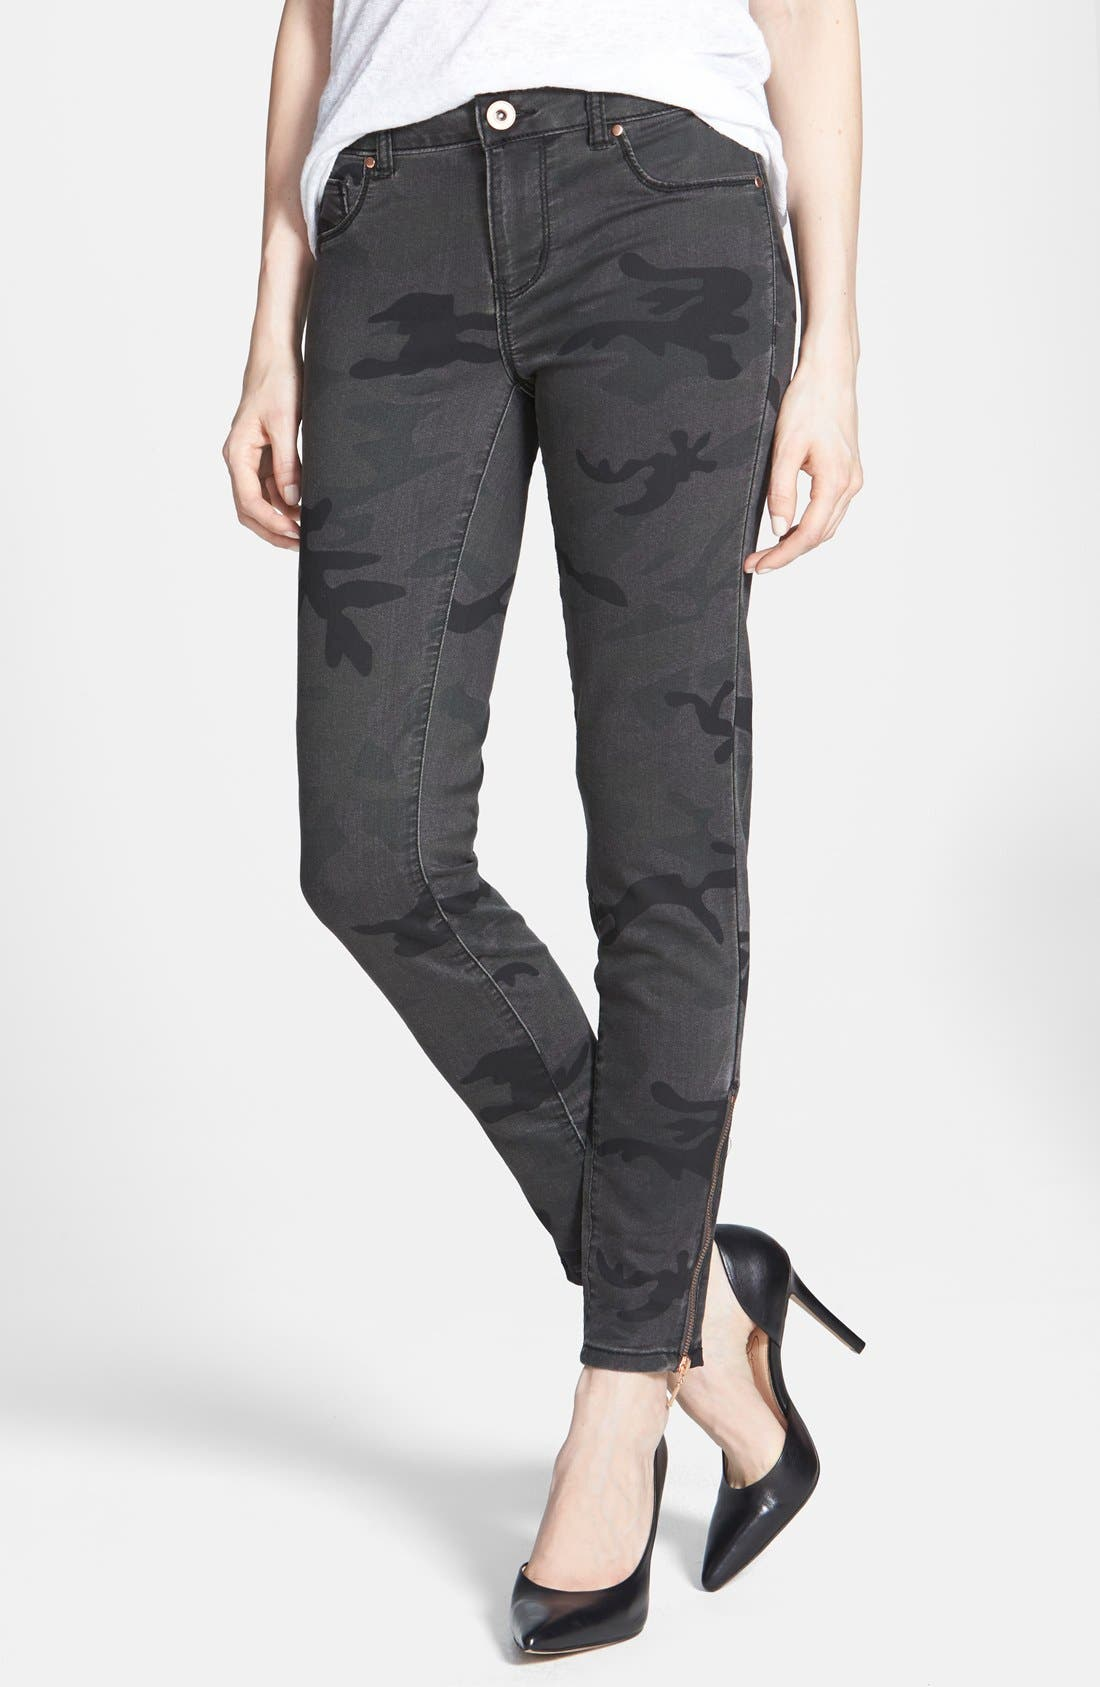 Main Image - Fire Camouflage Skinny Jeans (Camo) (Juniors)